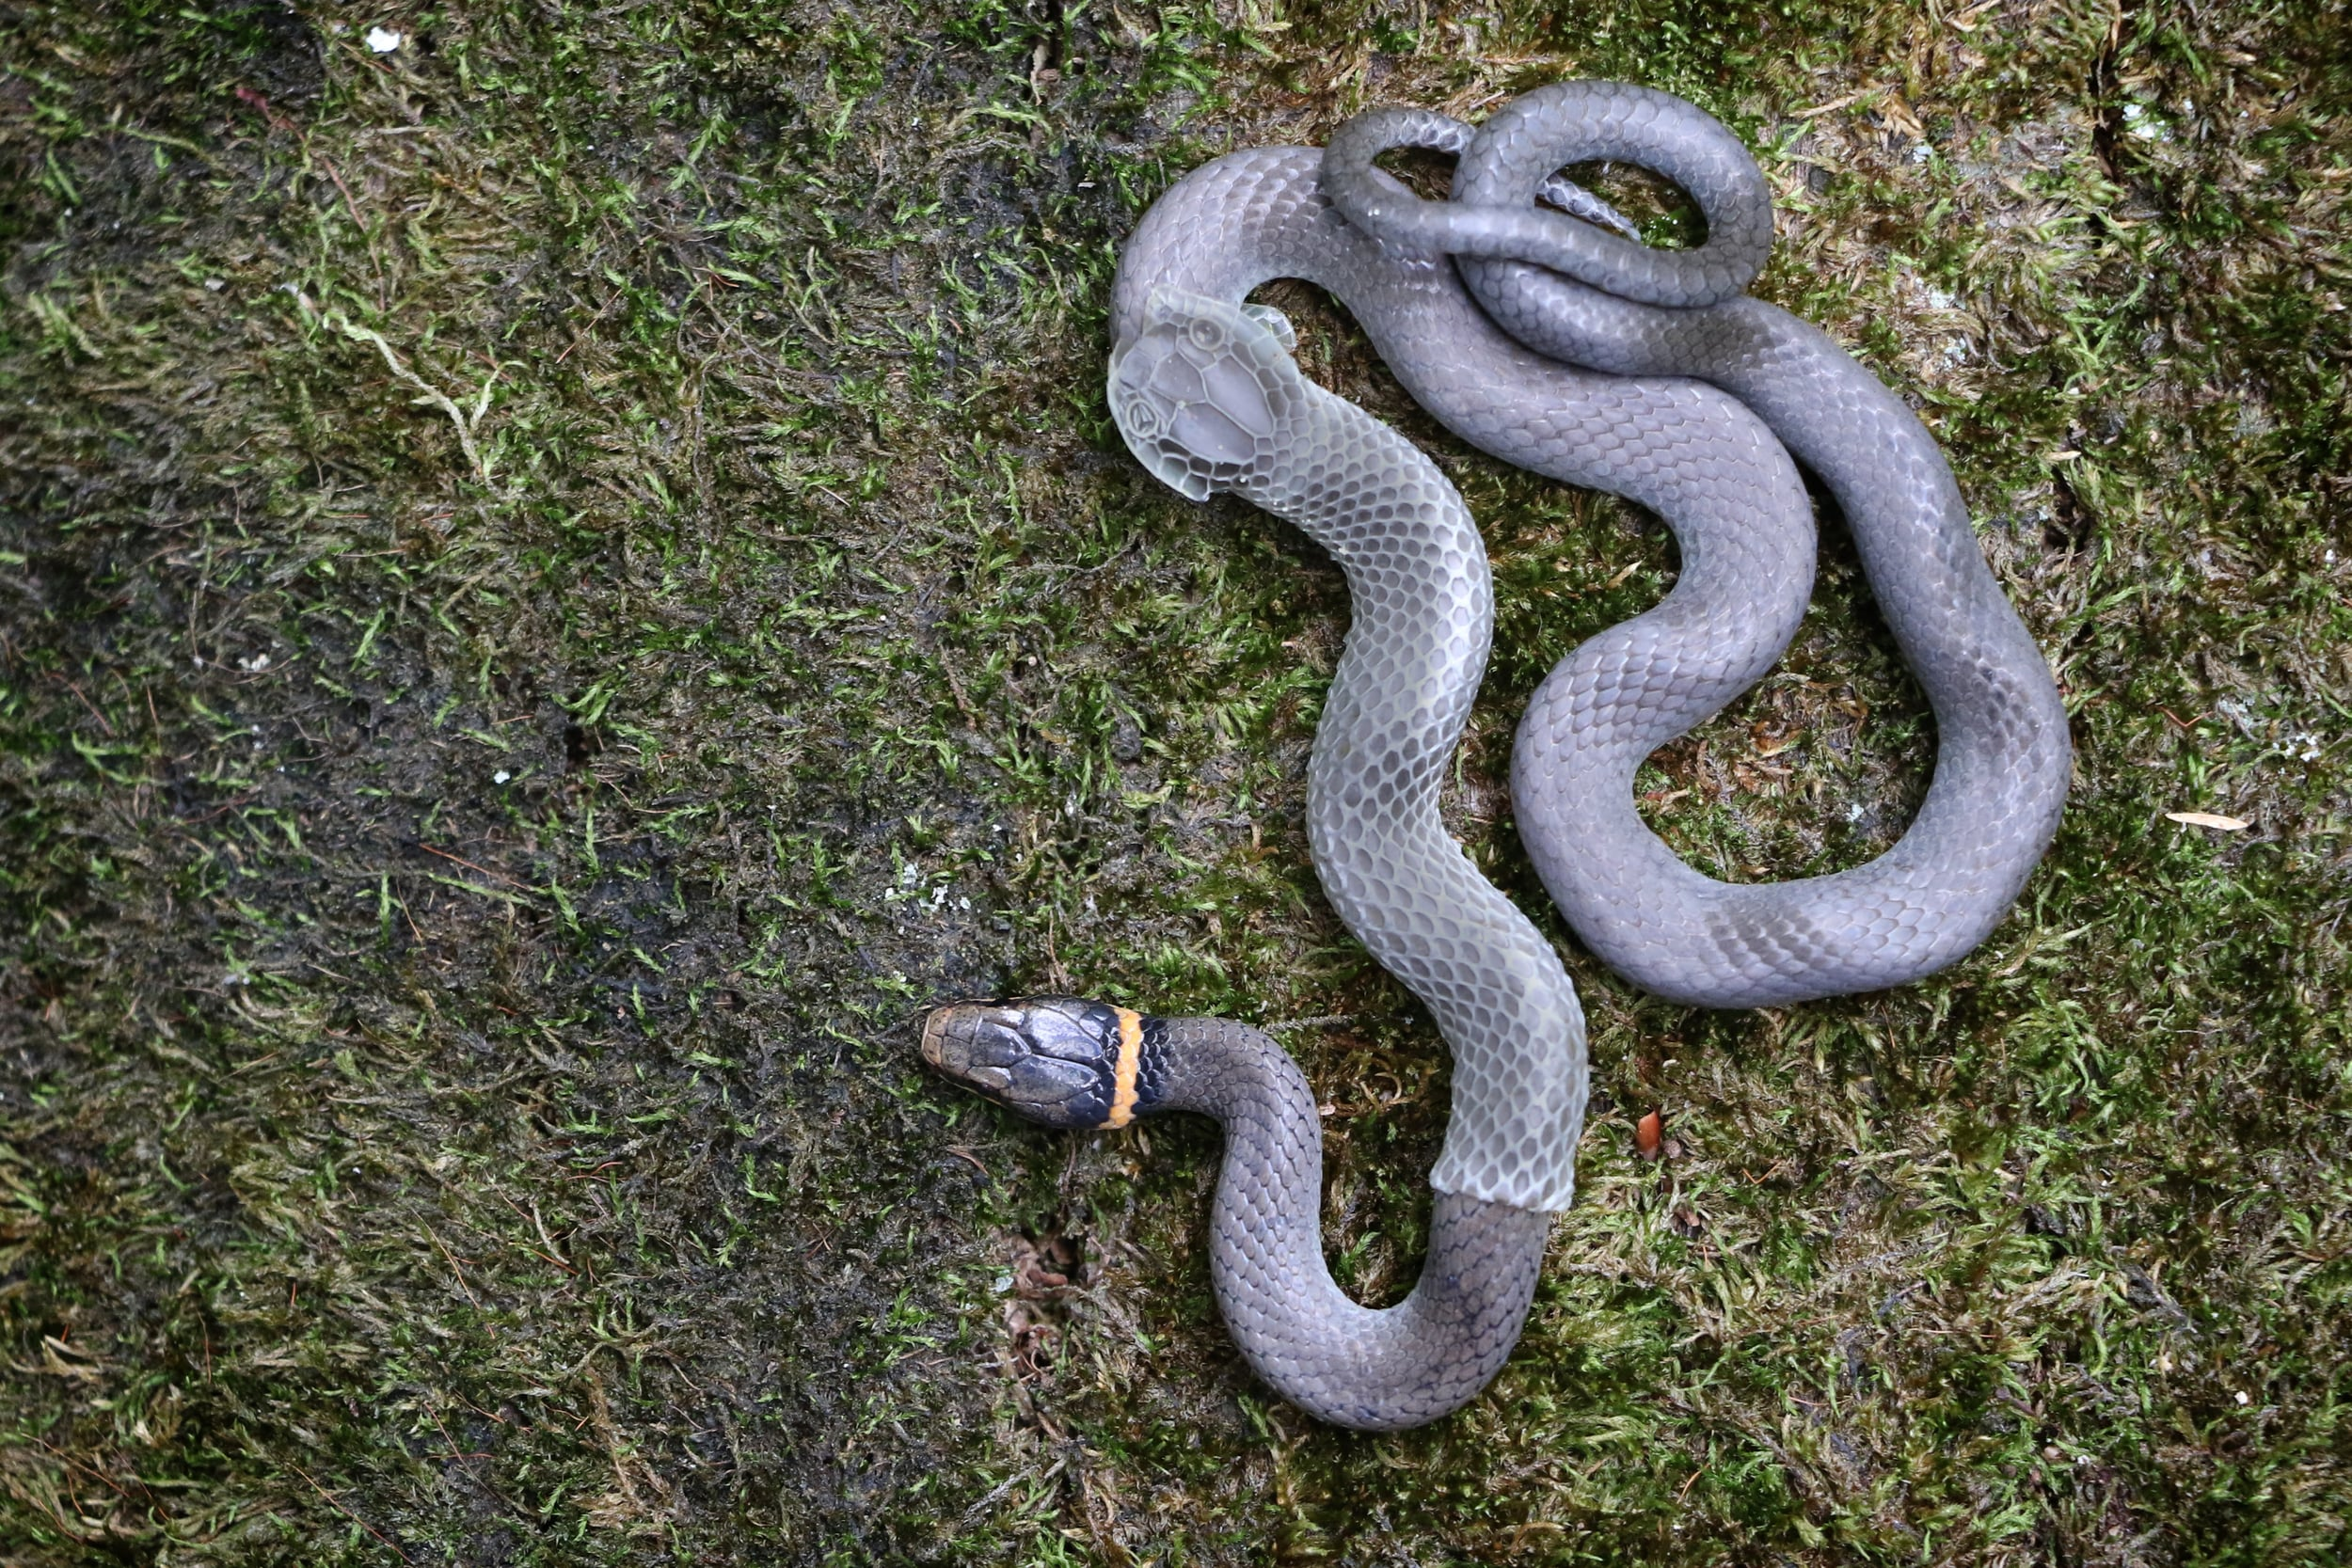 Northern Ring-necked Snake - I get these in the piedmont and mountainous regions. This individual, as is obvious, was just beginning to shed when I found it.